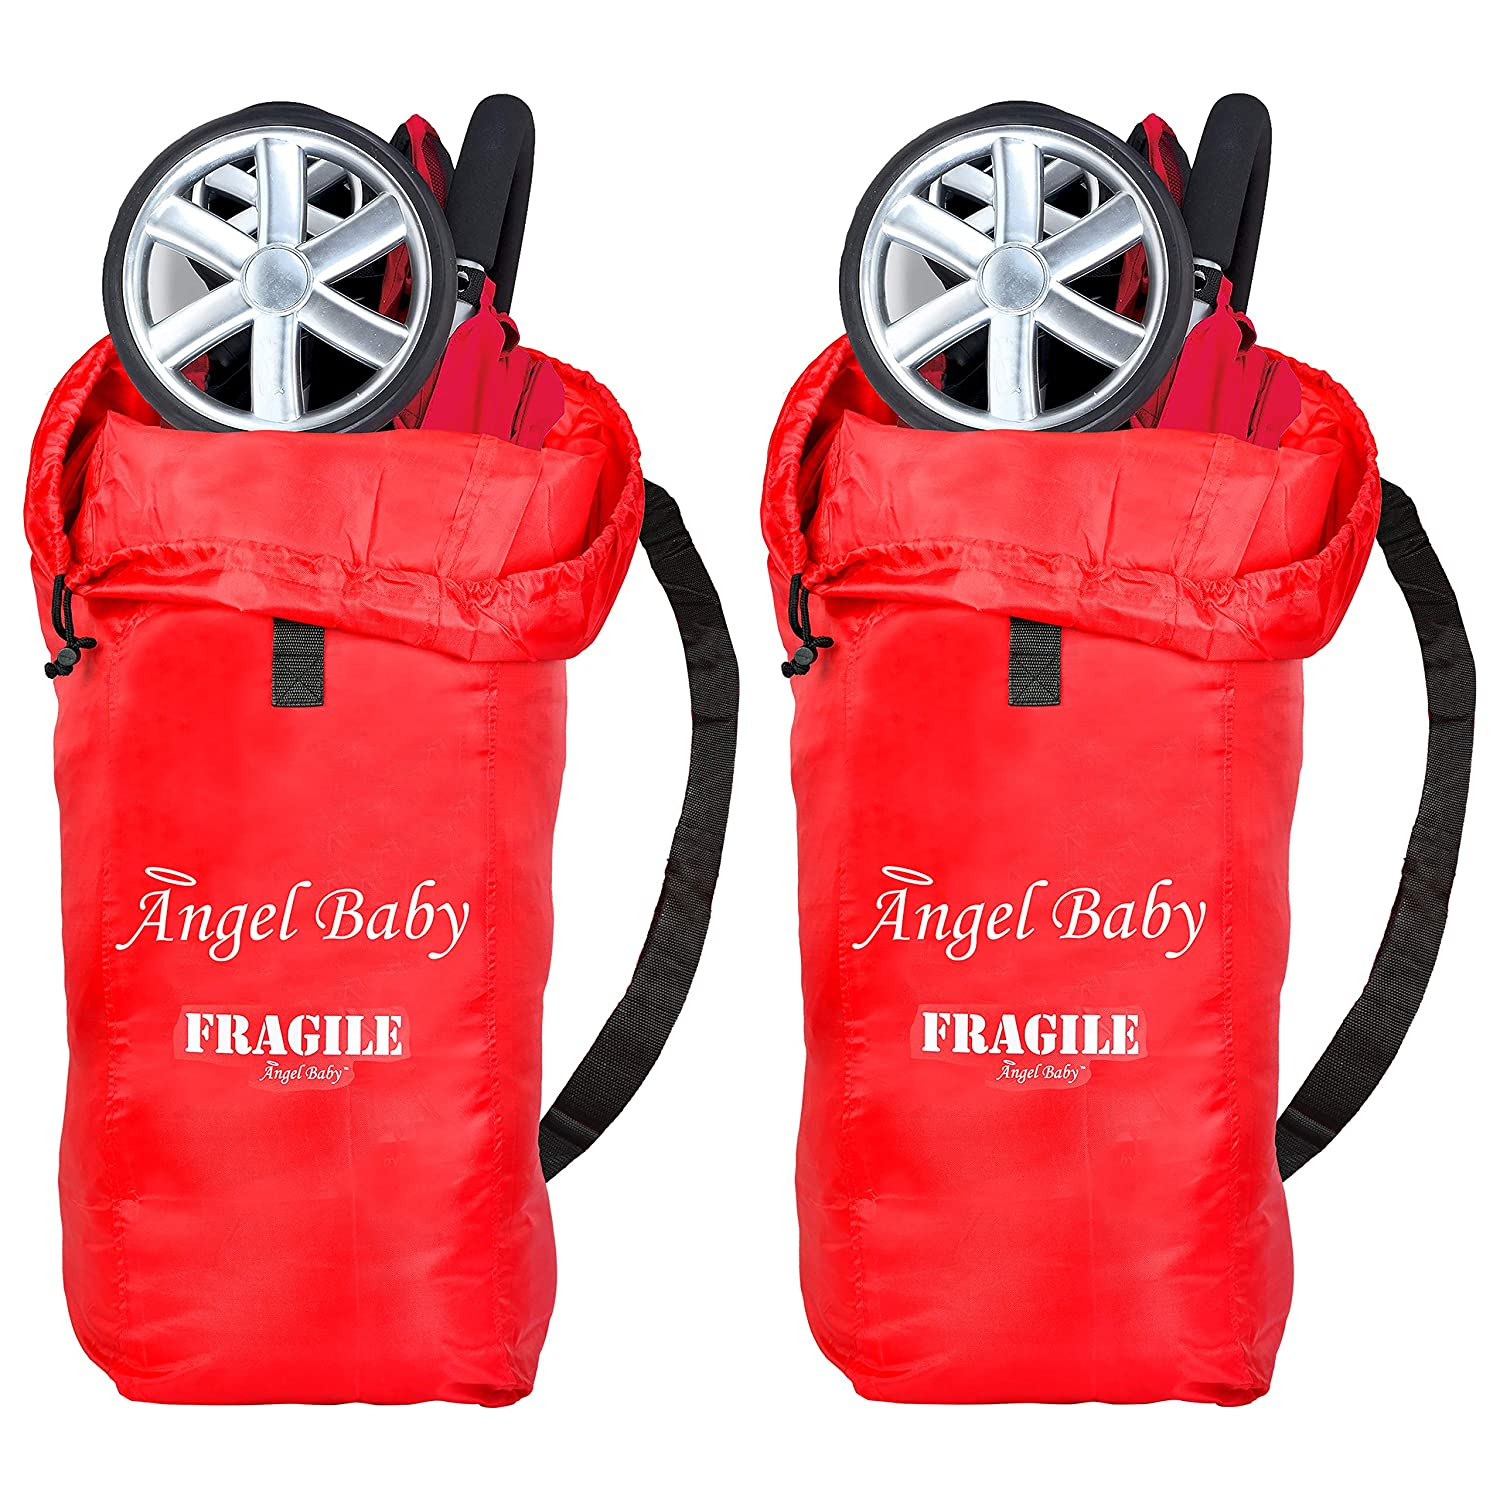 Backpack Large Capacity Stroller Bag For Airplane Covers Travel Gate Check